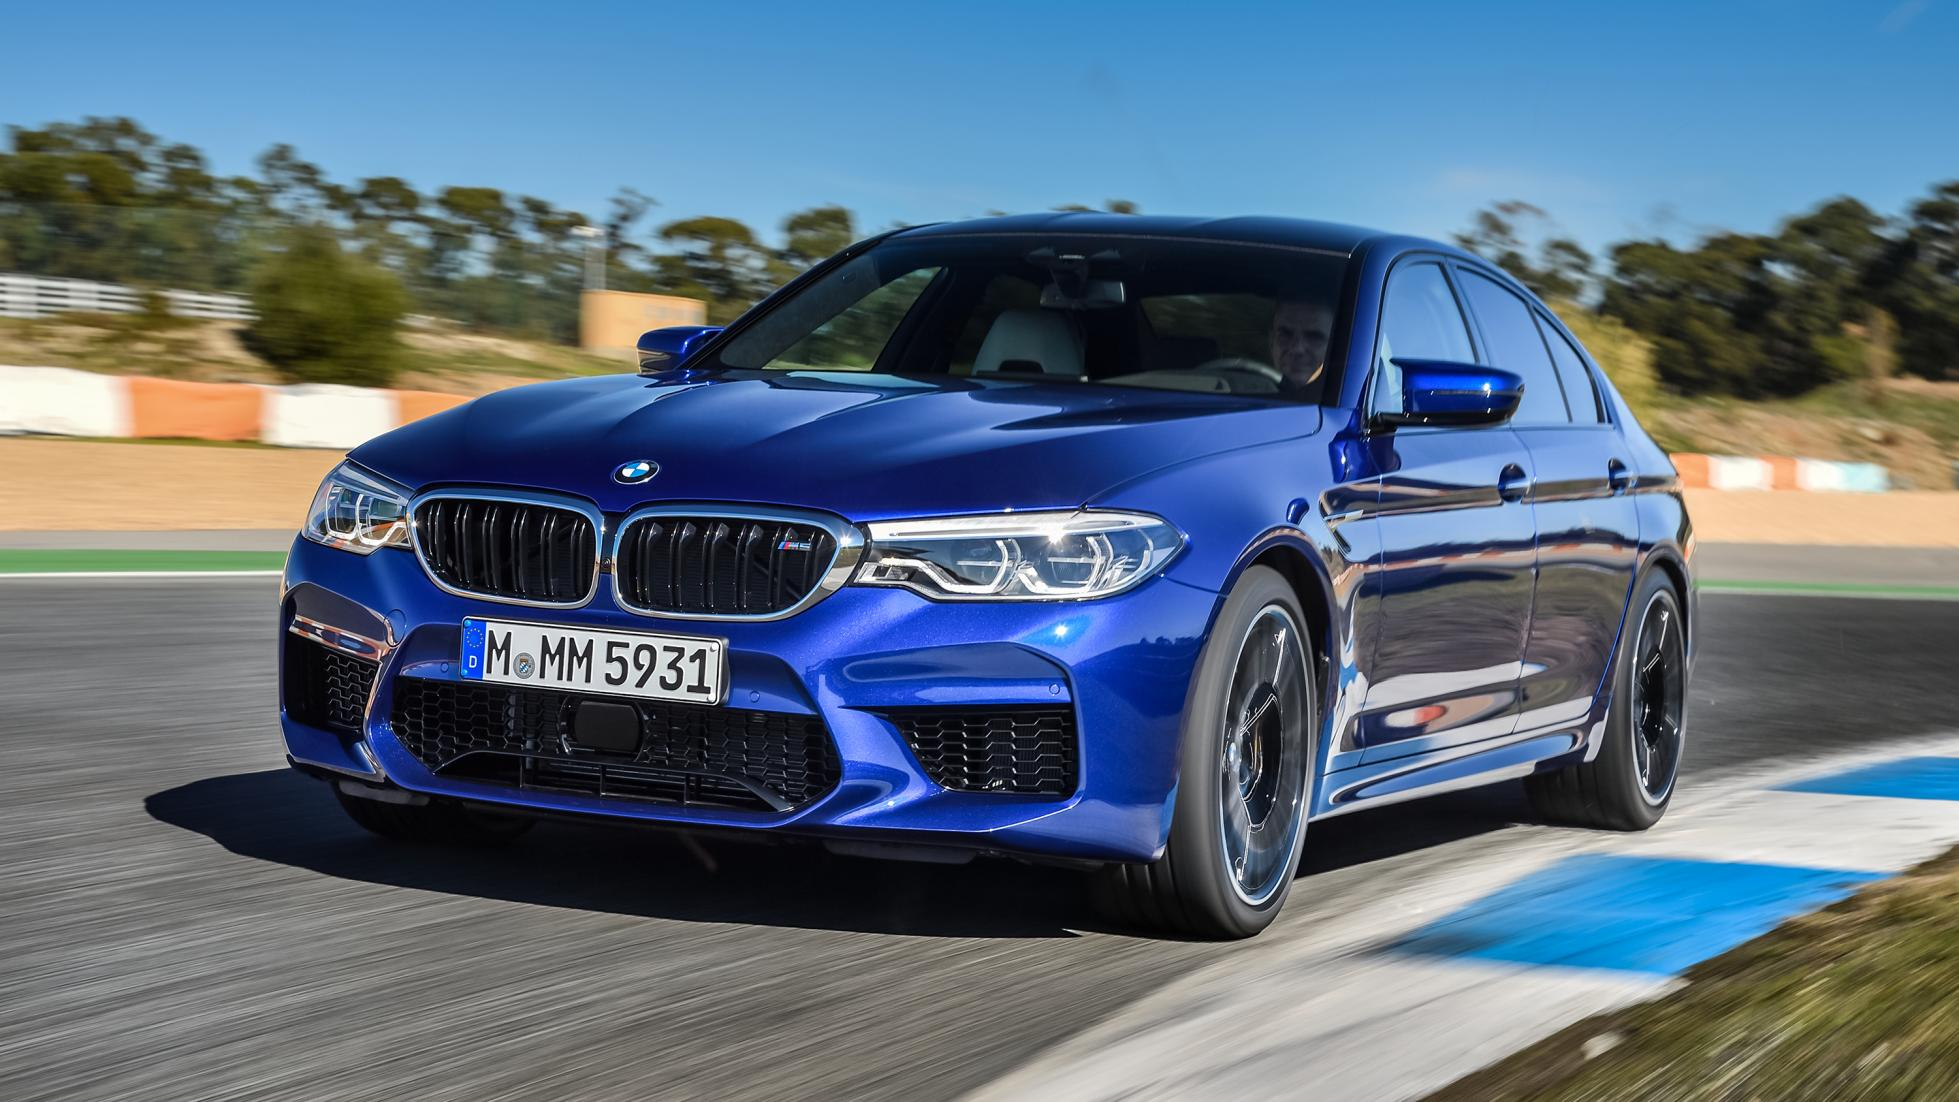 p90286937_highres_the-new-bmw-m5-11-20